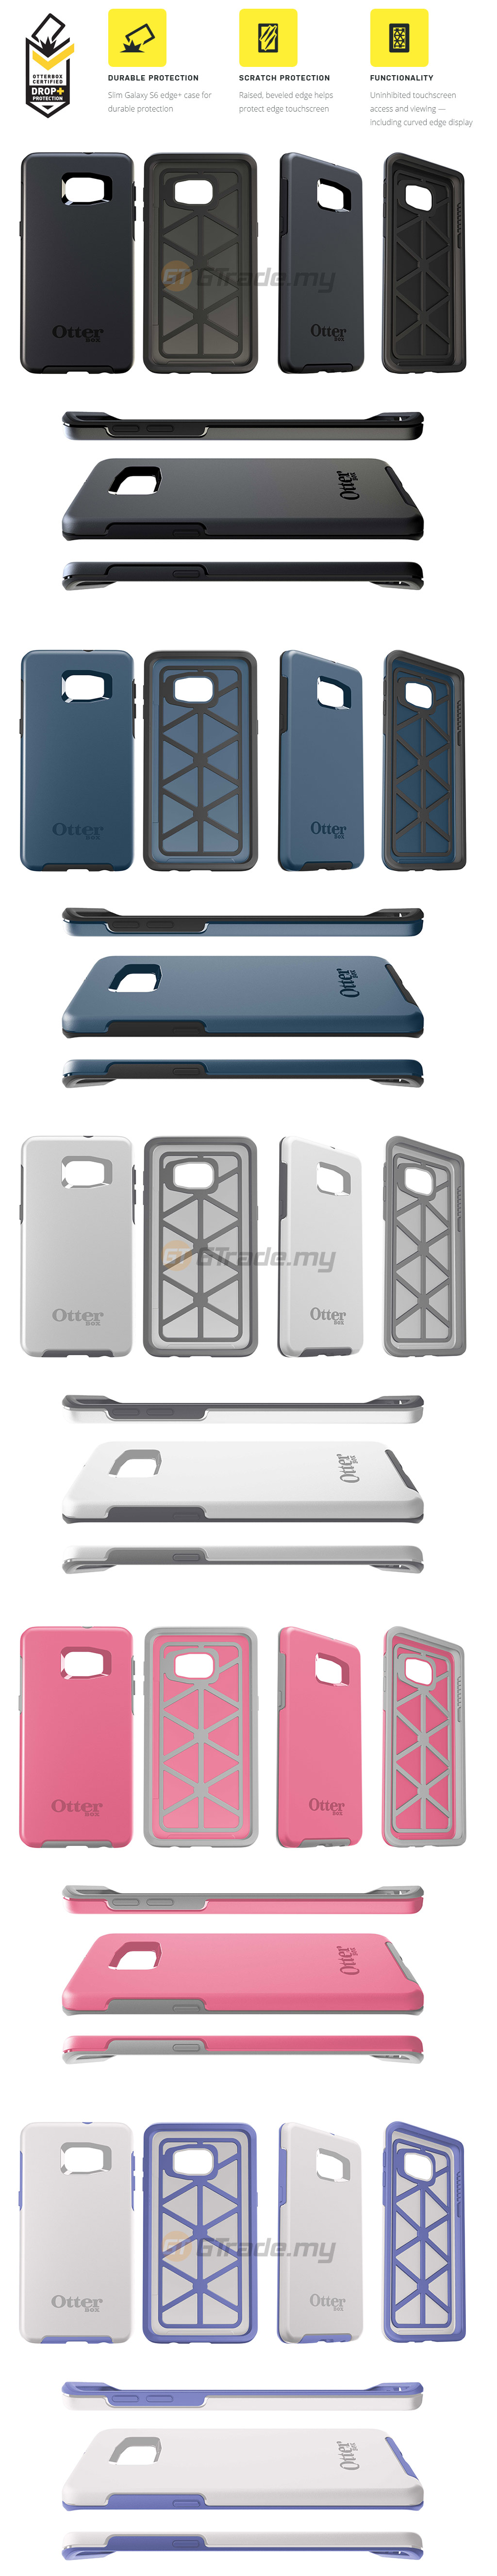 otterbox-symmetry-slim-stylish-shock-drop-protection-case-samsung-galaxy-s6-edge-+-plus-p